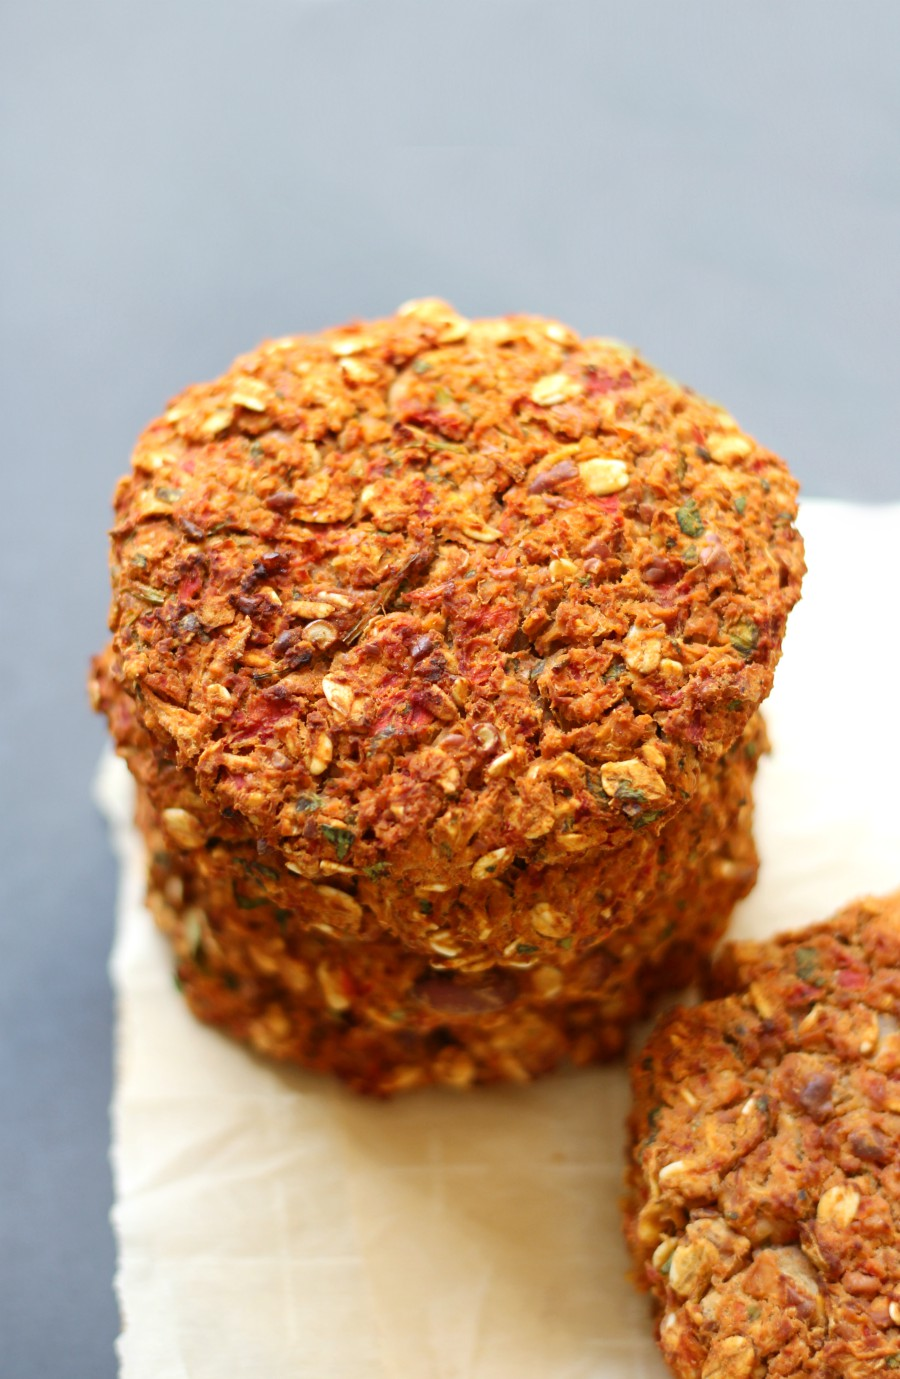 Spicy Vegan Celeriac Pinto Bean Burgers (Gluten-Free, Allergy-Free) | Strength and Sunshine @RebeccaGF666 A hearty meatless burger that will please even the biggest meat-eater! Spicy Vegan Celeriac Pinto Bean Burgers that are gluten-free, top 8 allergy-free, freezable, and won't fall apart! Loaded with smokey chipotle flavor, this healthy veggie burger recipe well be a star at the dinner table!